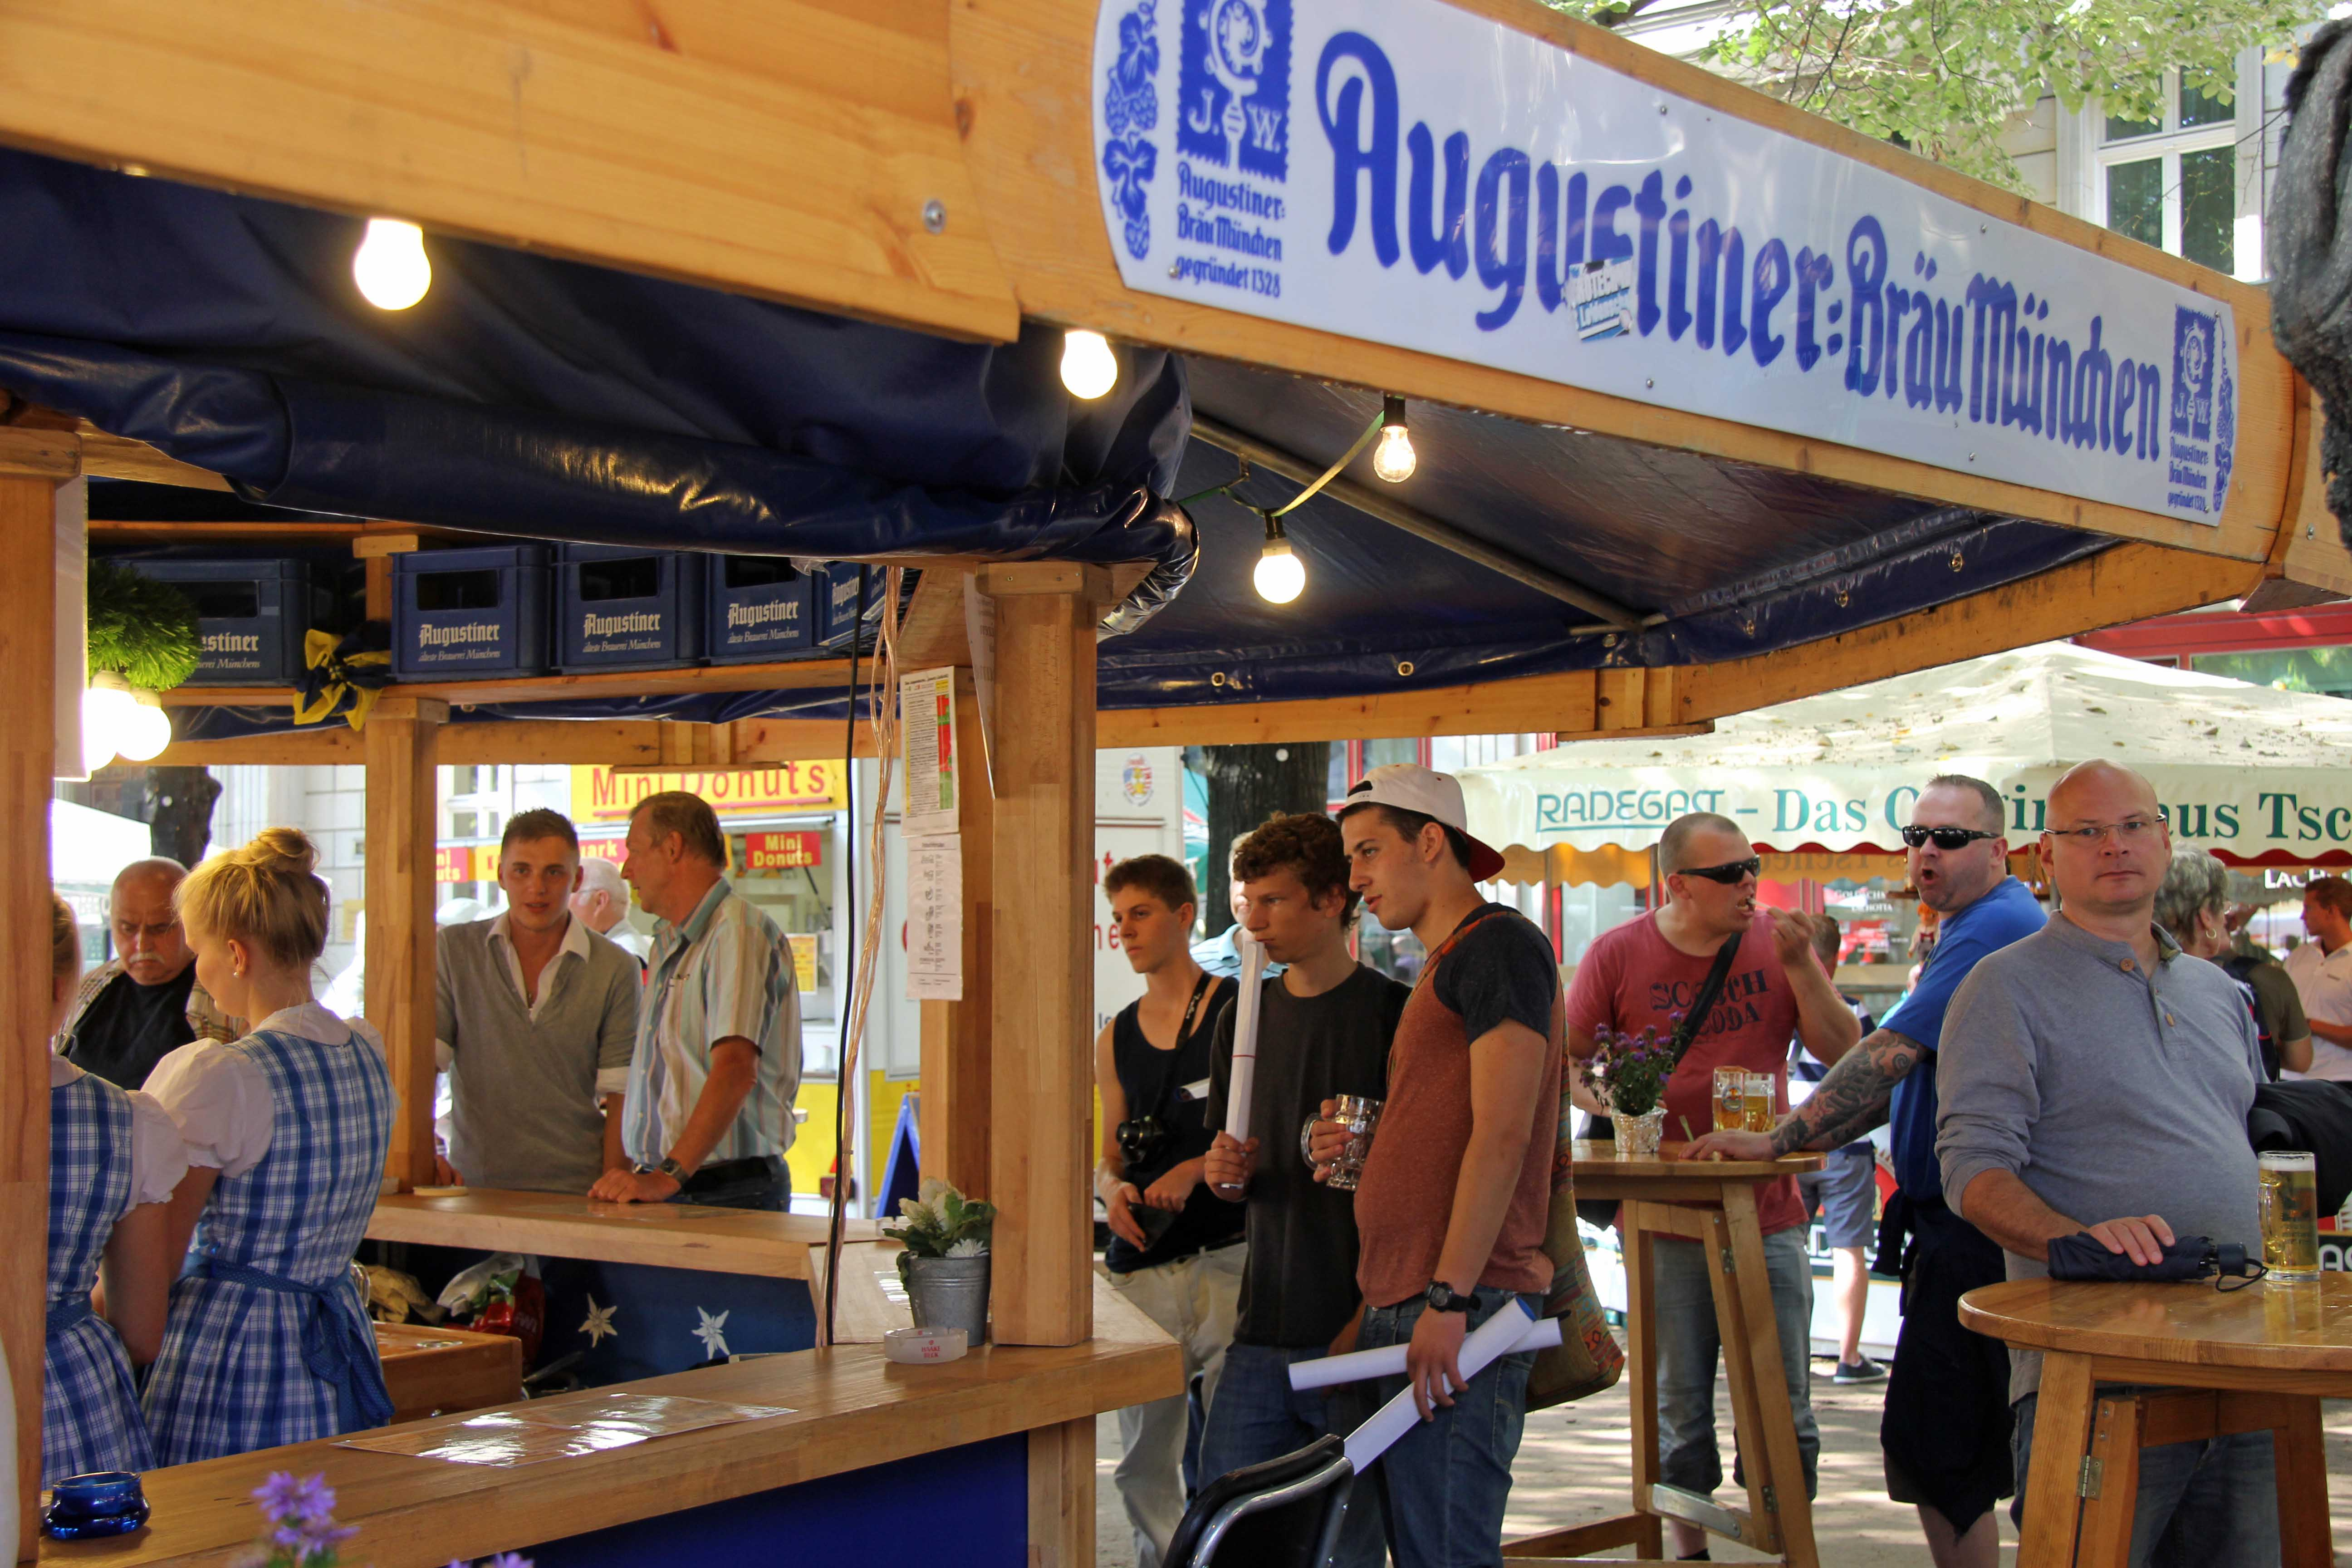 The Augustiner stall at the International Berlin Beer Festival (Internationales Berliner Bierfestival)